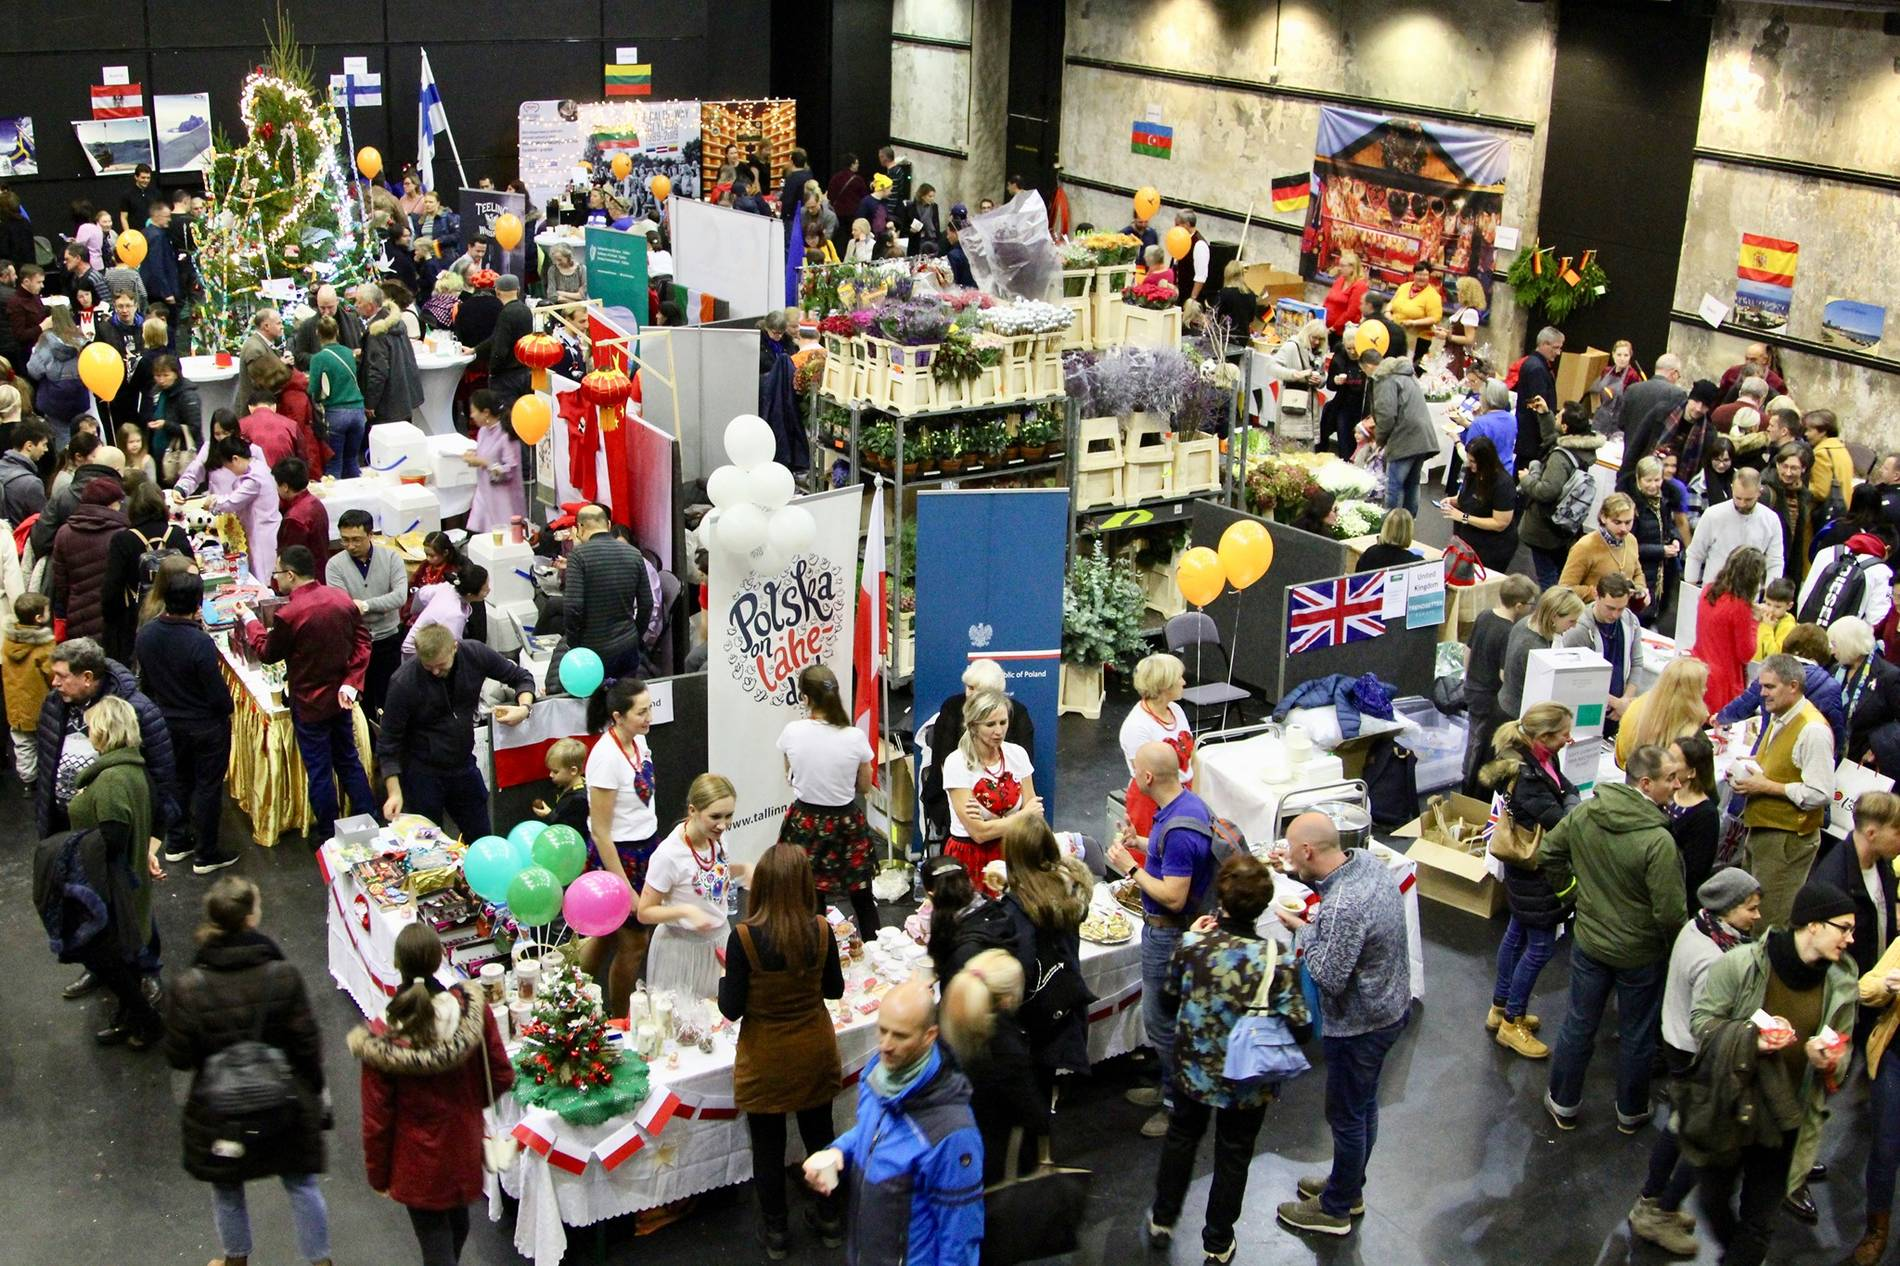 Group of people at the annual Tallinn Christmas Bazaar in Estonia